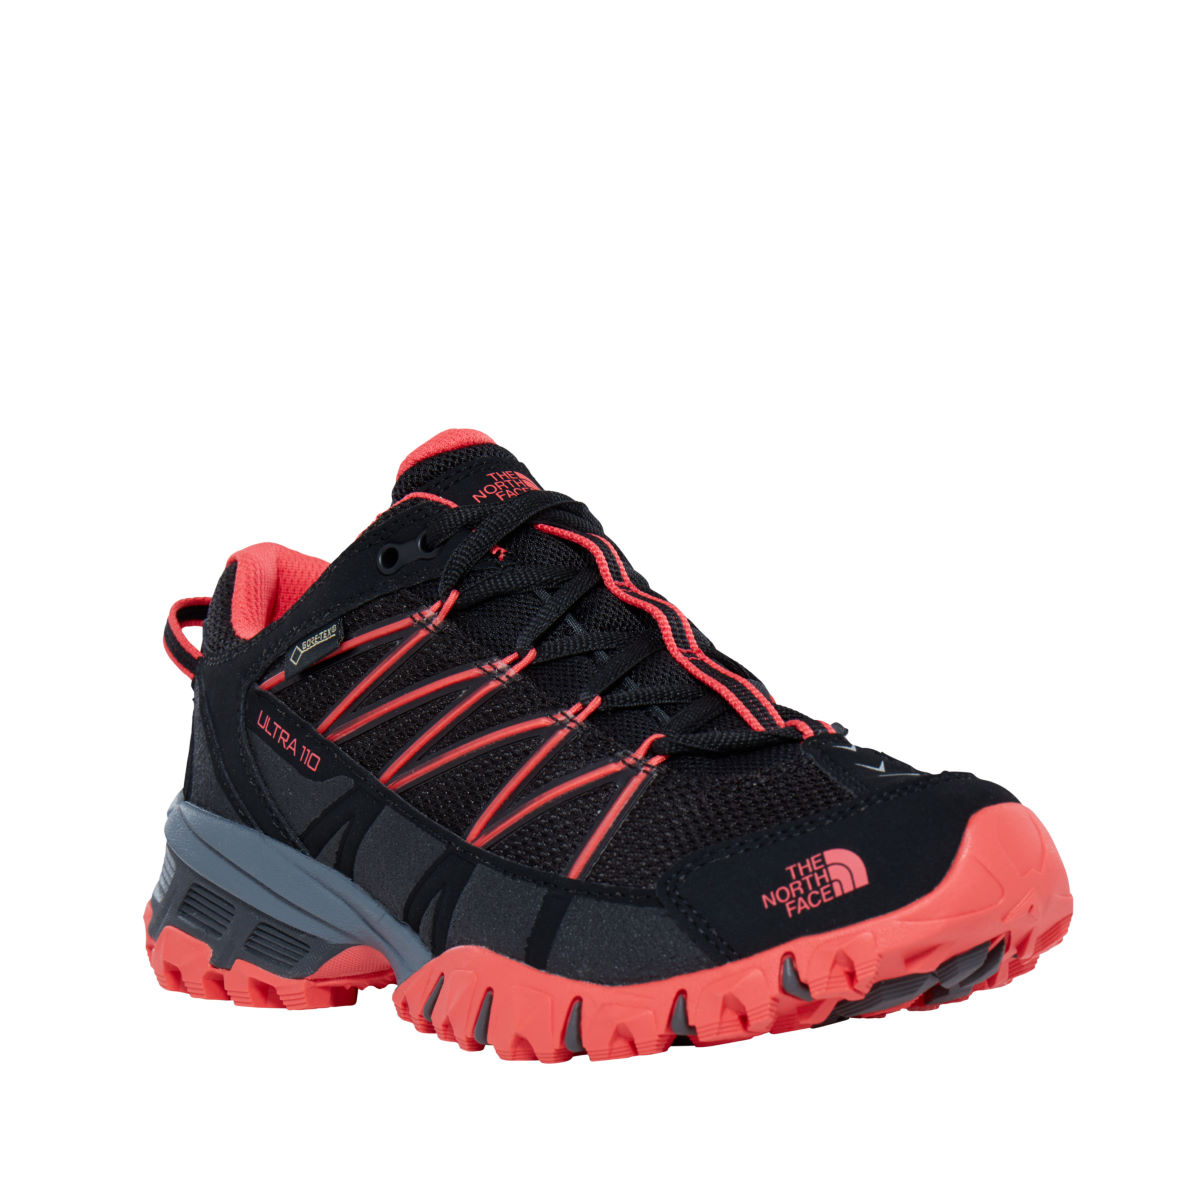 Chaussures Femme The North Face Ultra 110 GTX - 8,5 UK